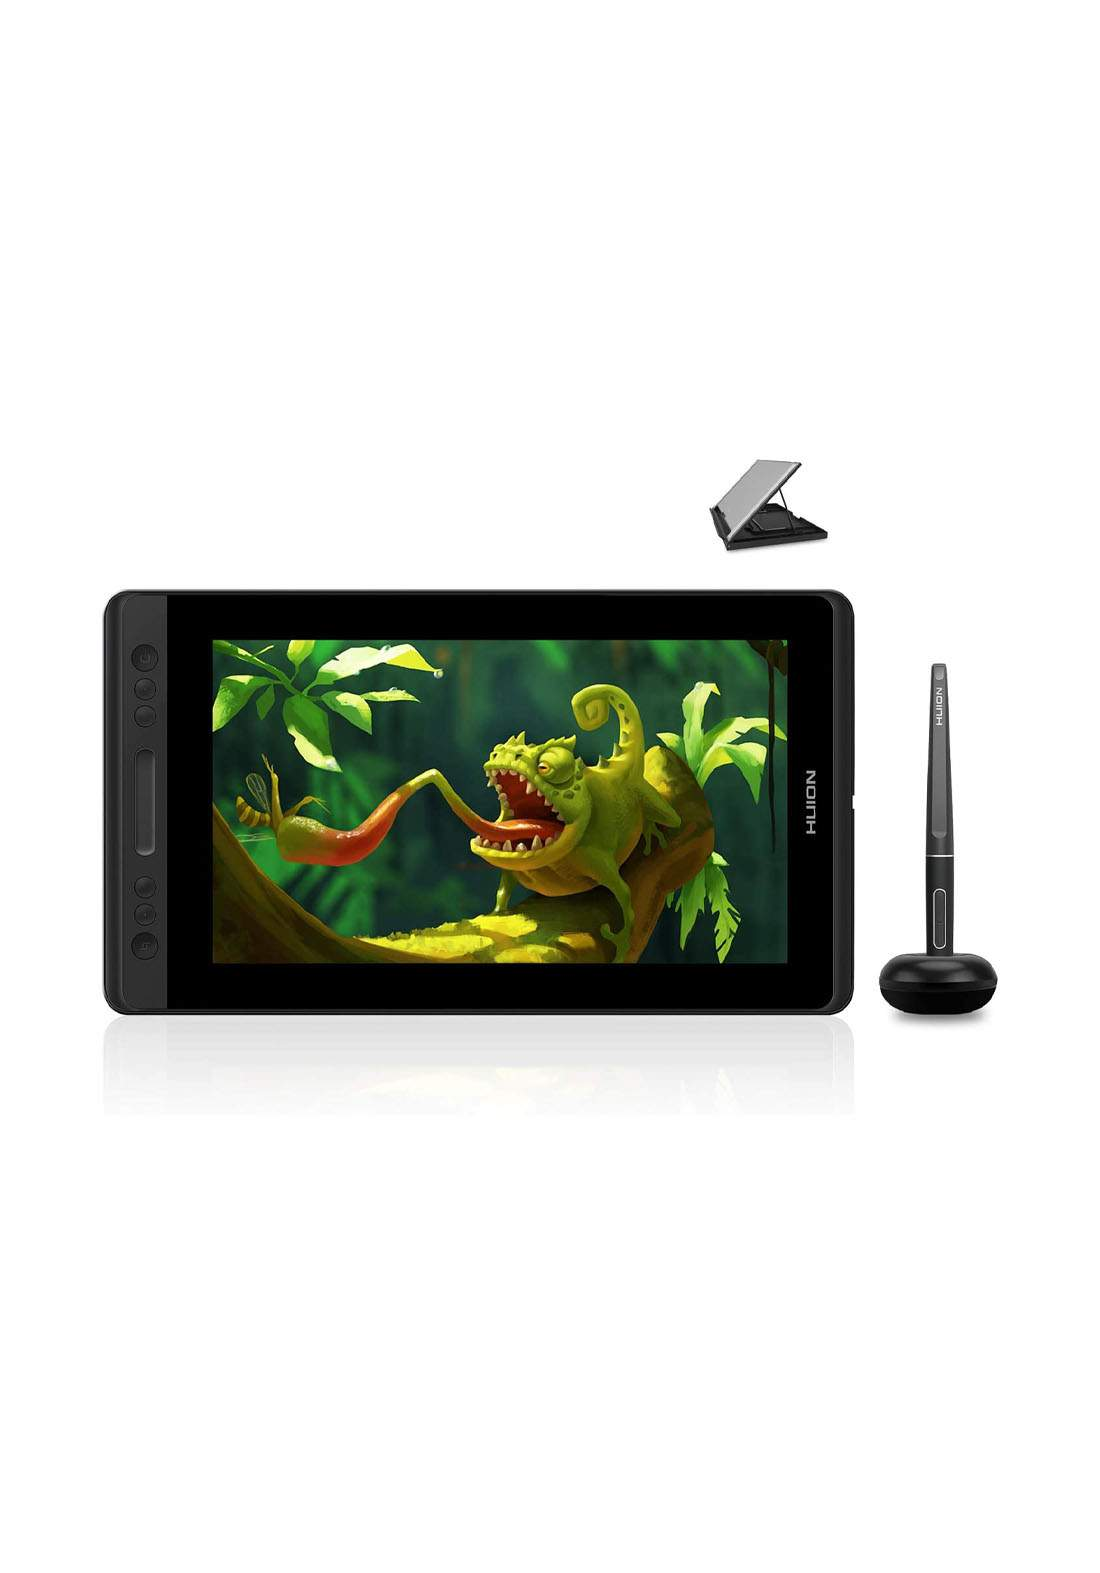 Huion Kamvas Pro 12 Drawing Tablet with Screen Graphics Drawing Monitor with Battery-Free تابلت رسم وكتابة